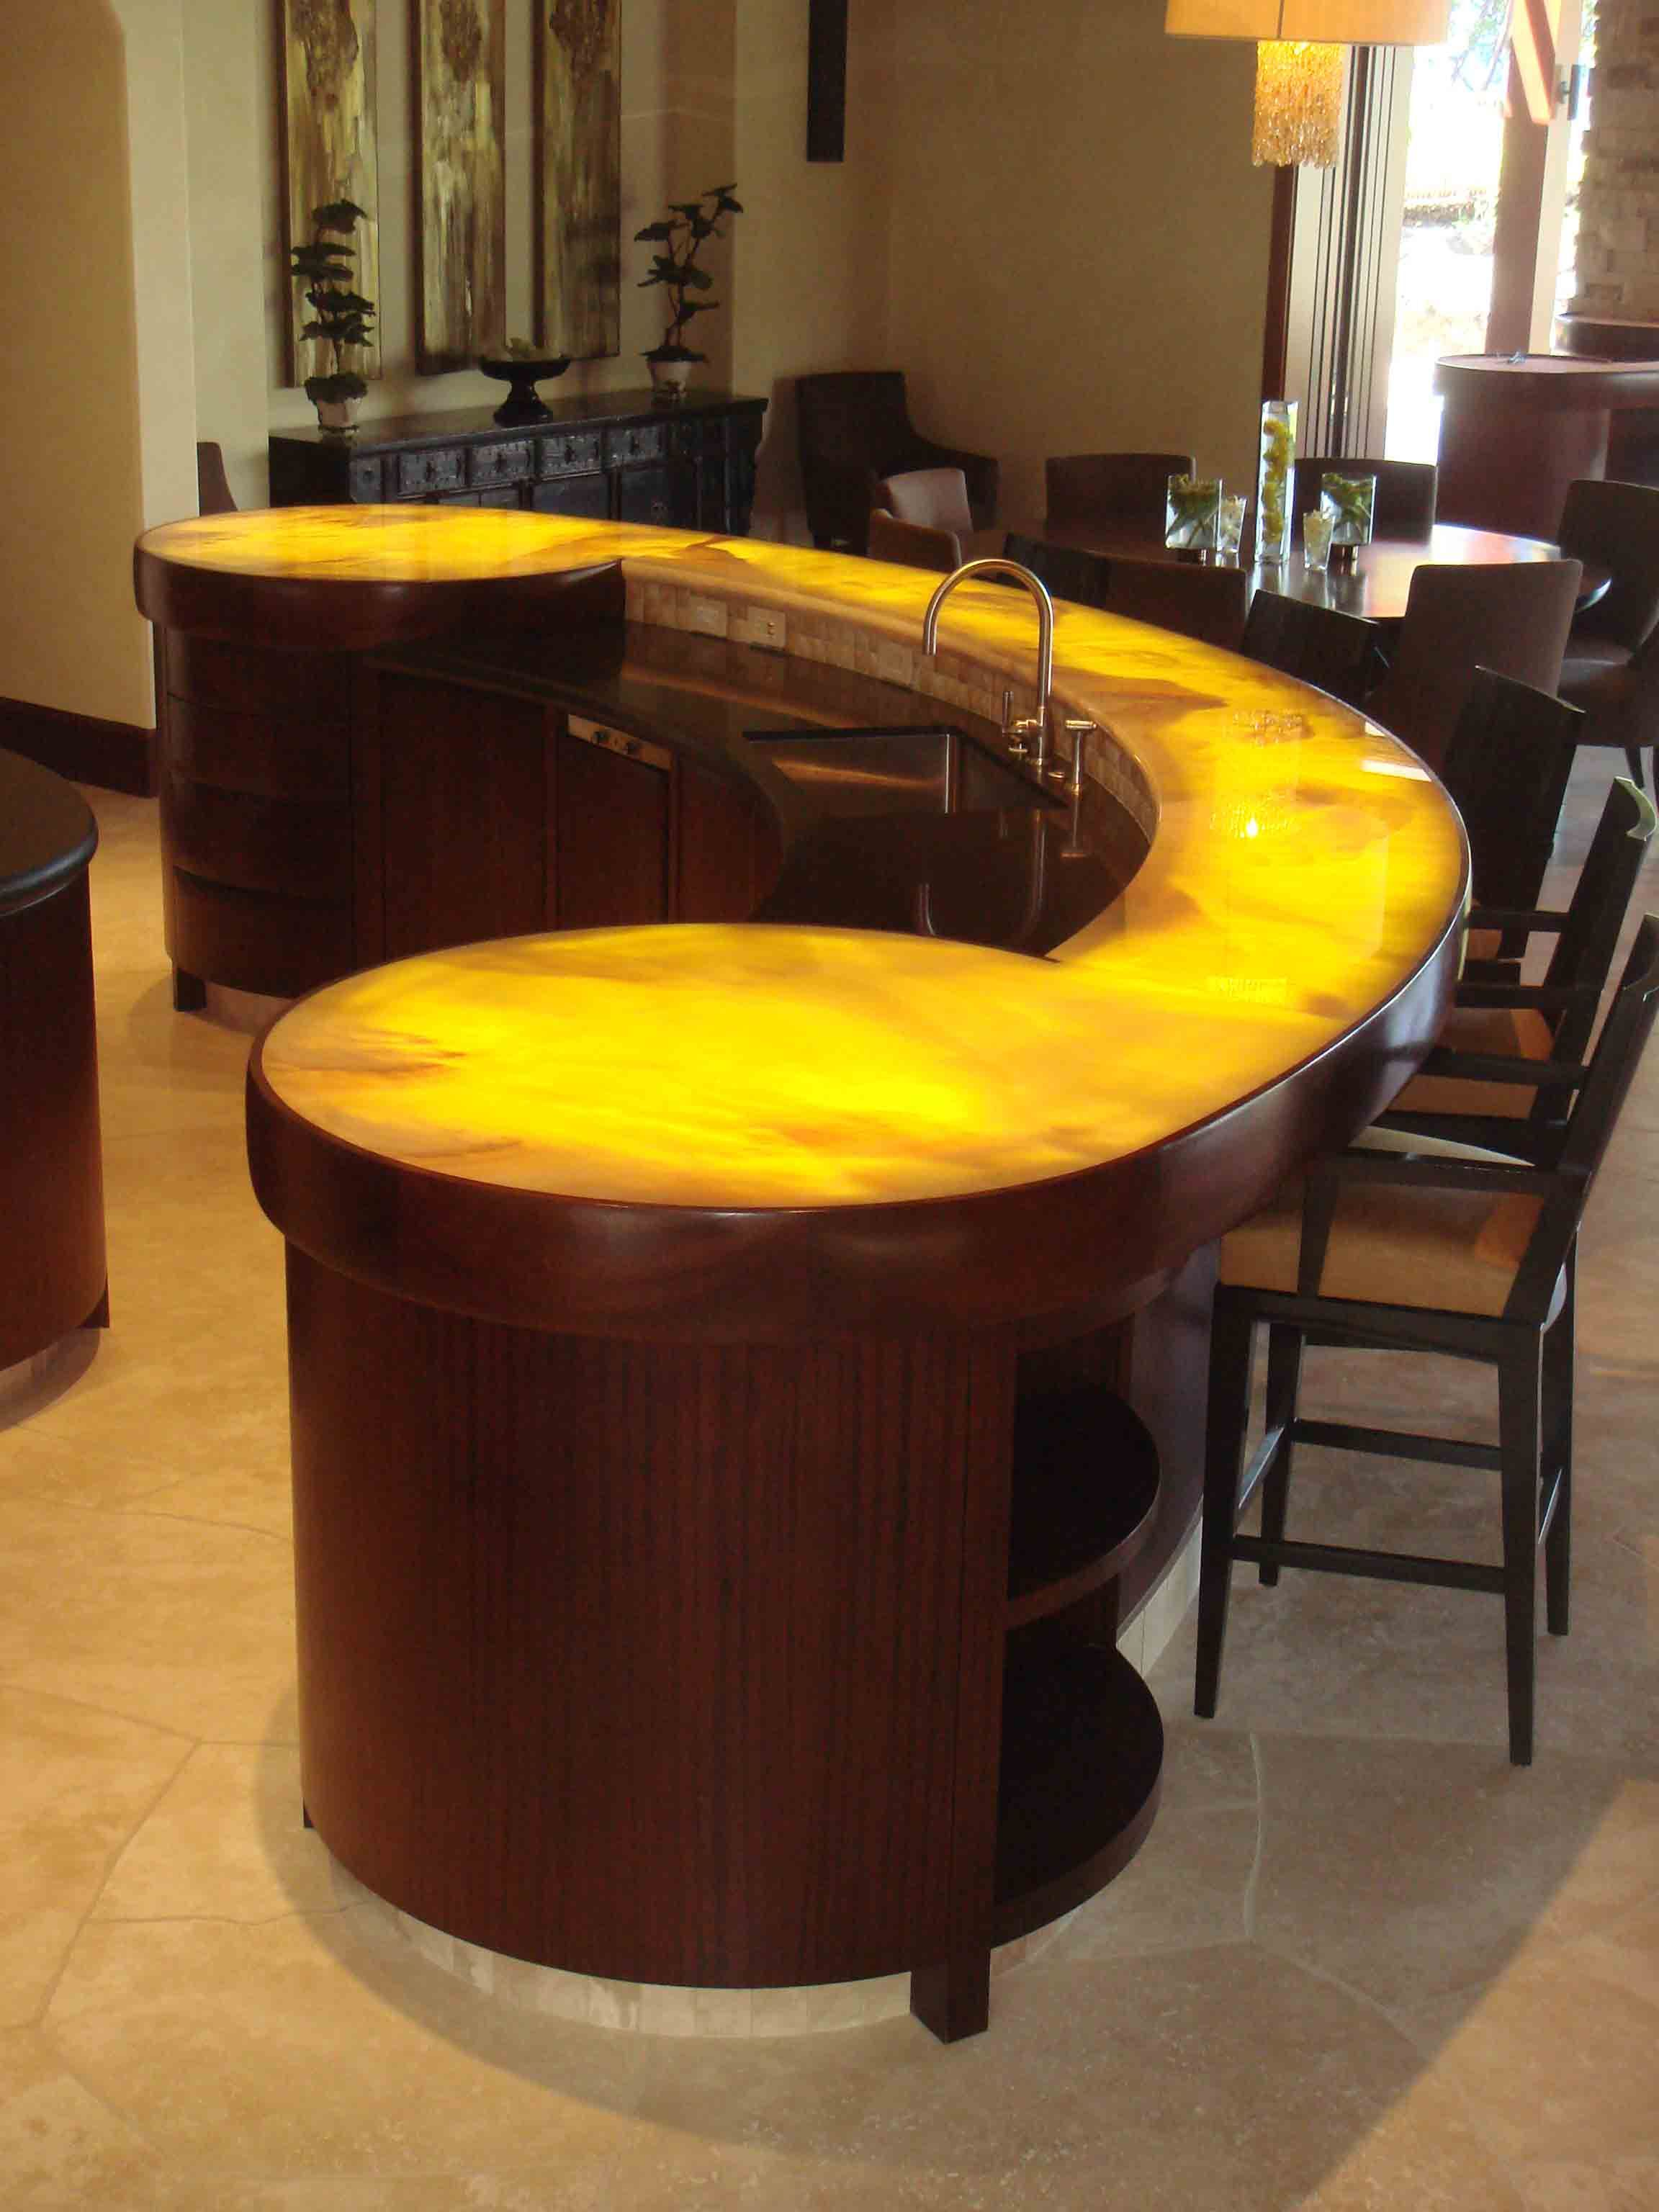 Fetching Modern Bar Counter Designs For Home Design With Dark ...